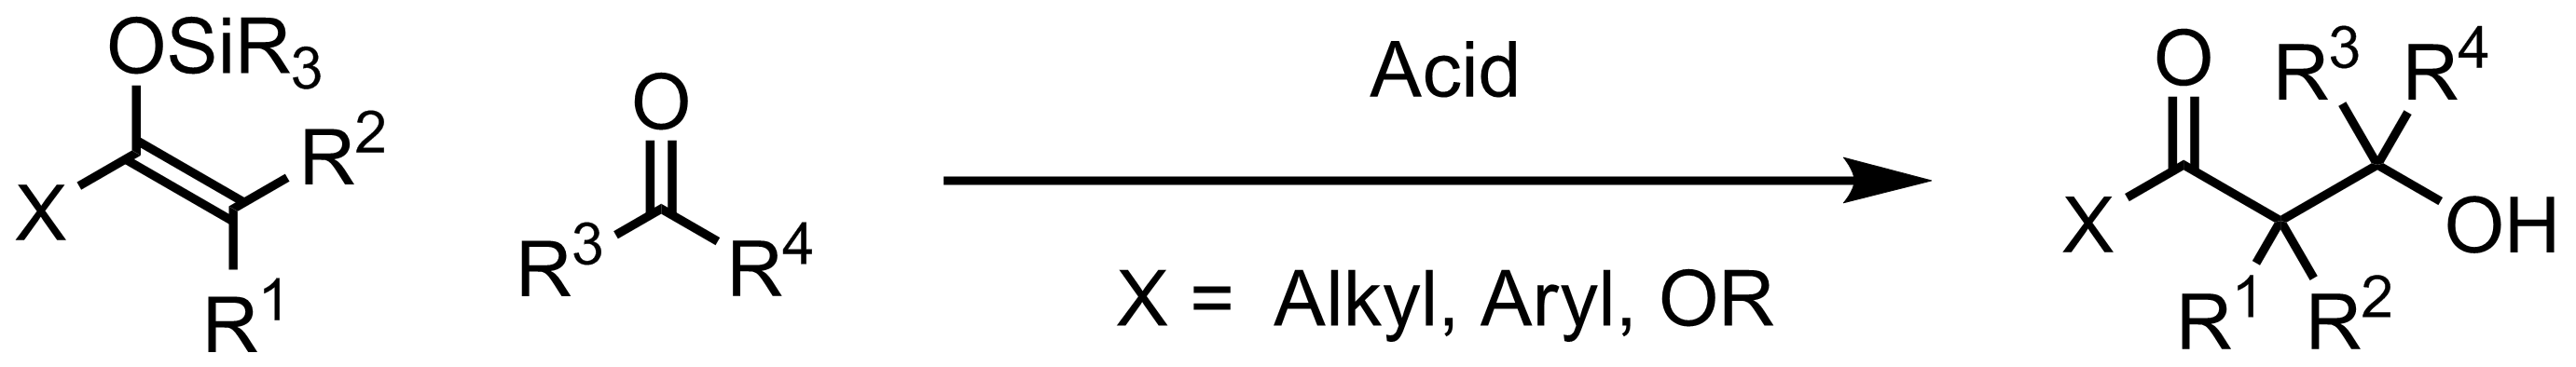 Schematic representation of the Mukaiyama Aldol Addition.